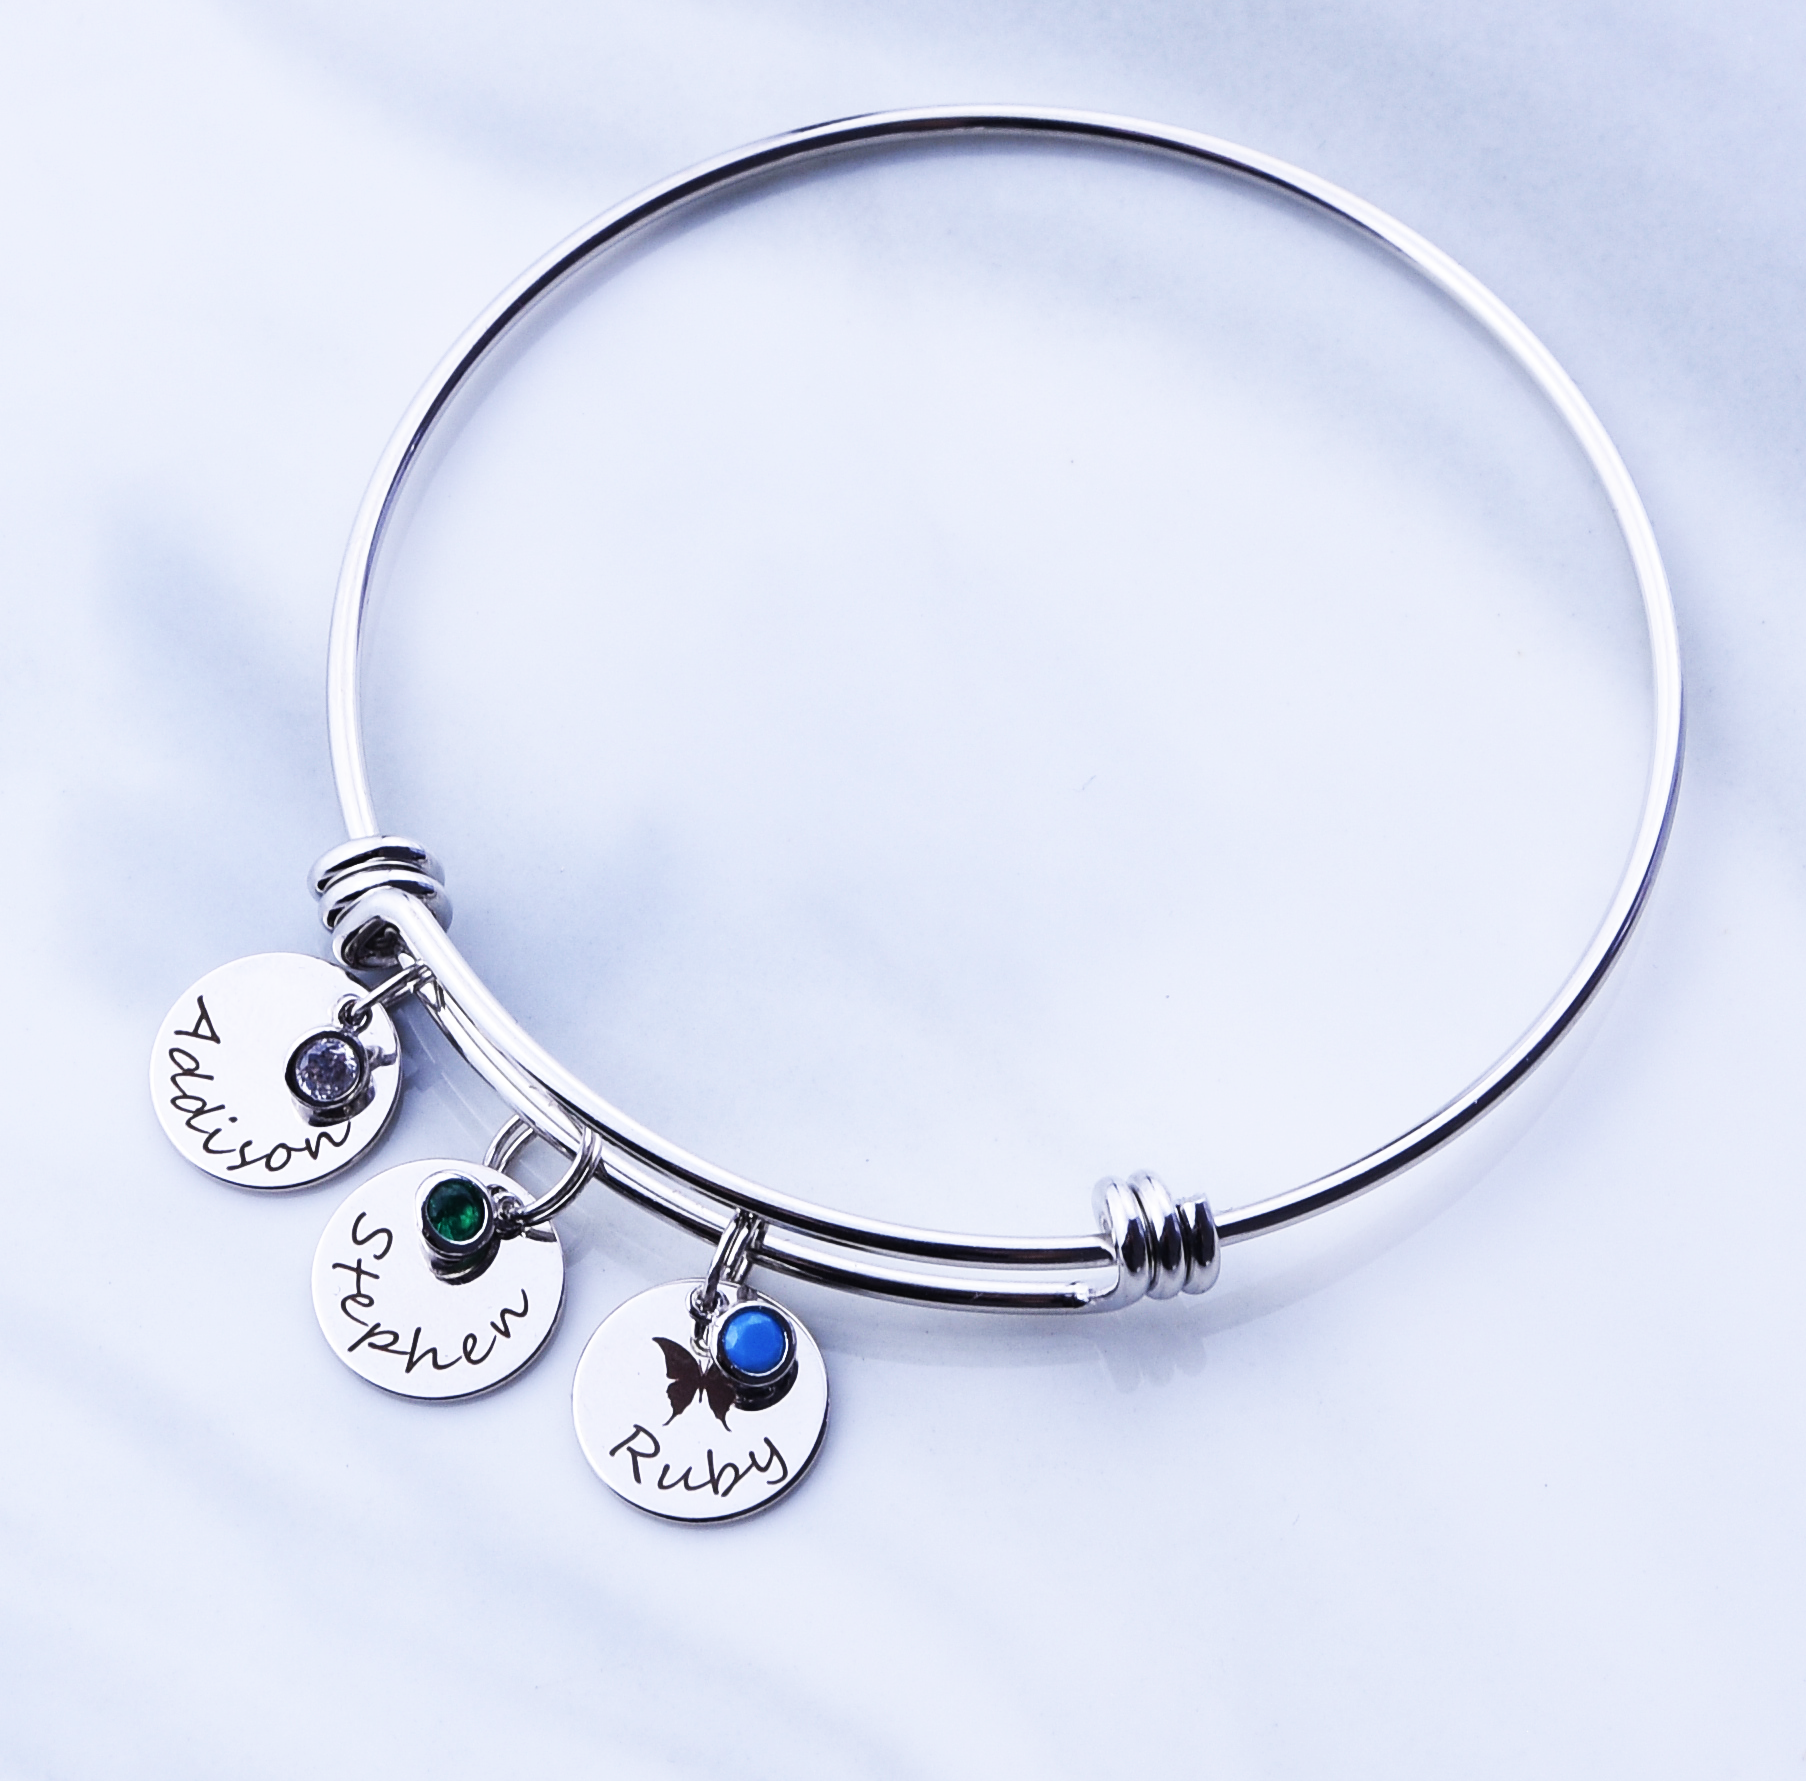 Silver color personalized bracelet with birthstone and initials gift for her